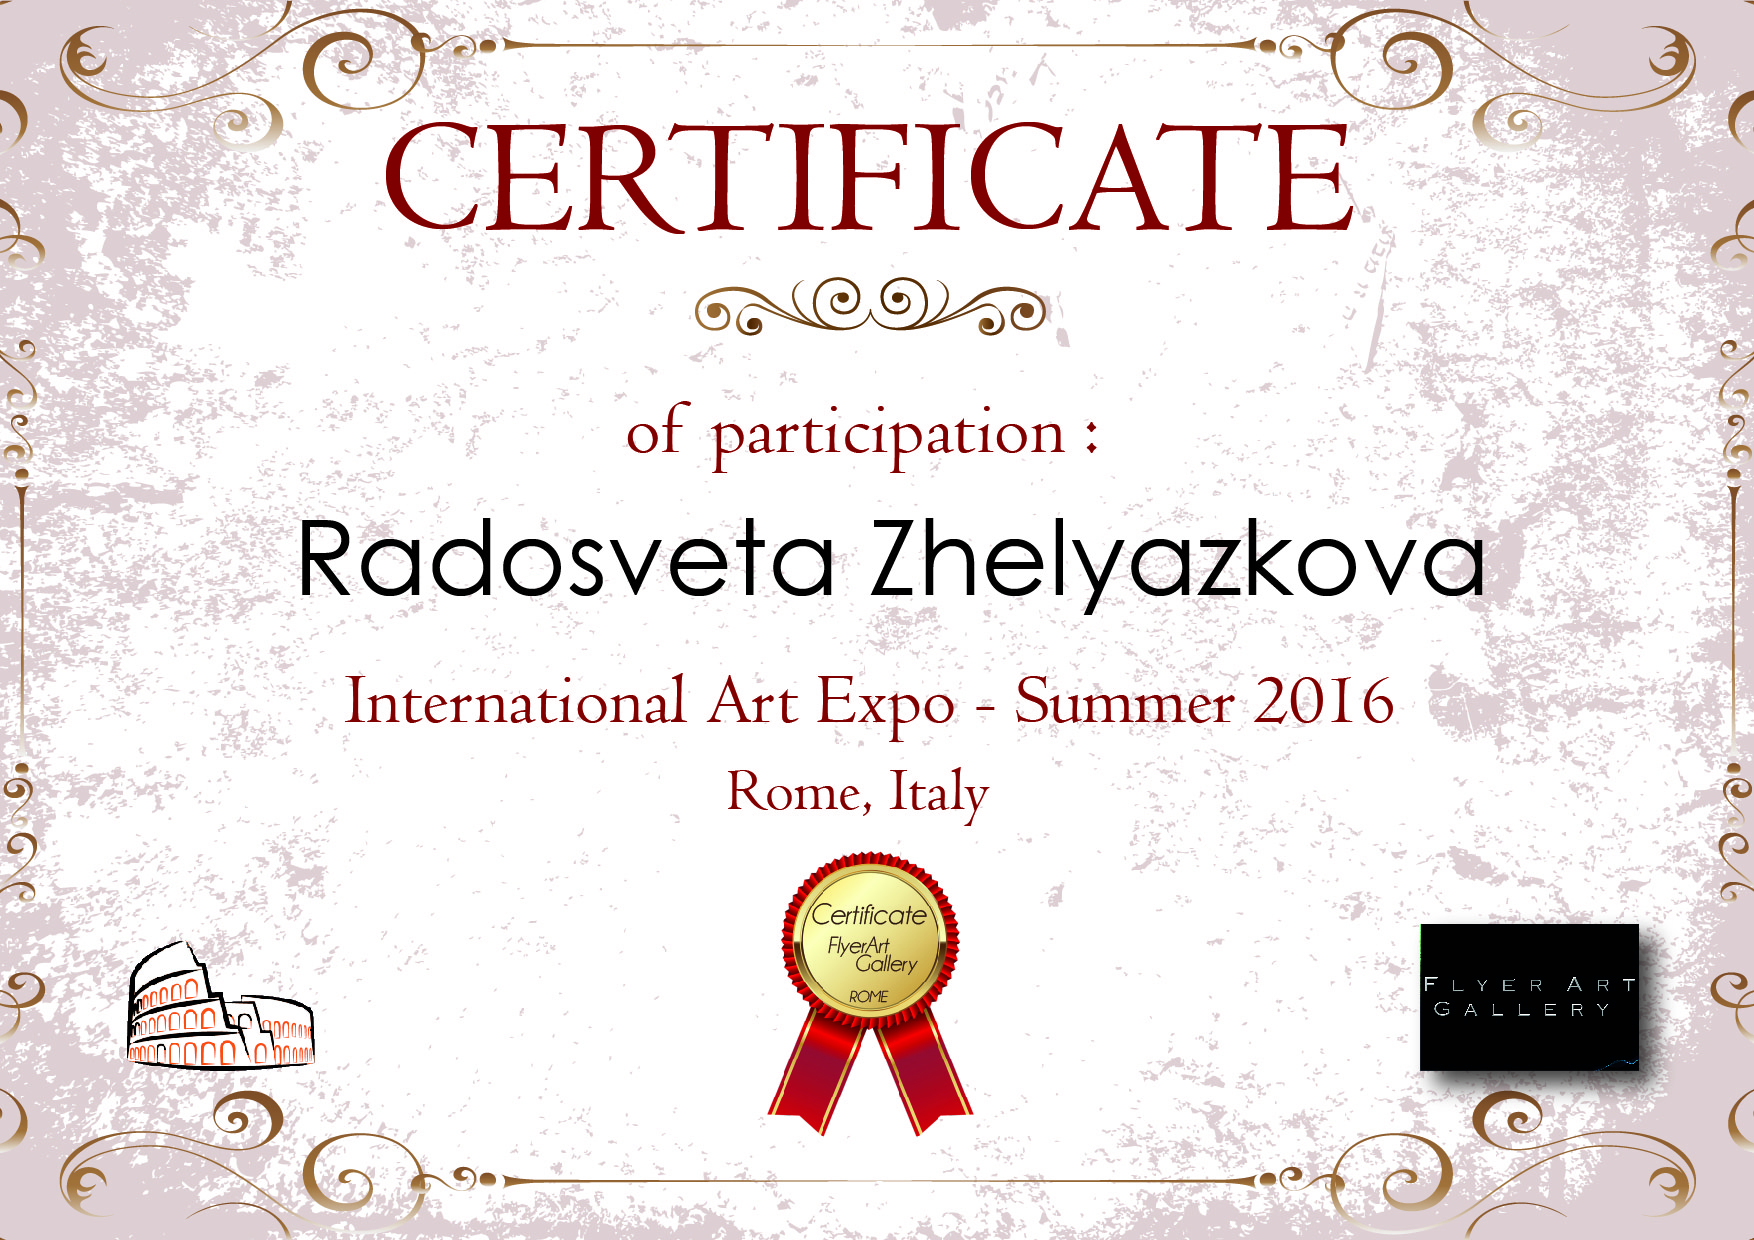 Certificate from the International Art Expo